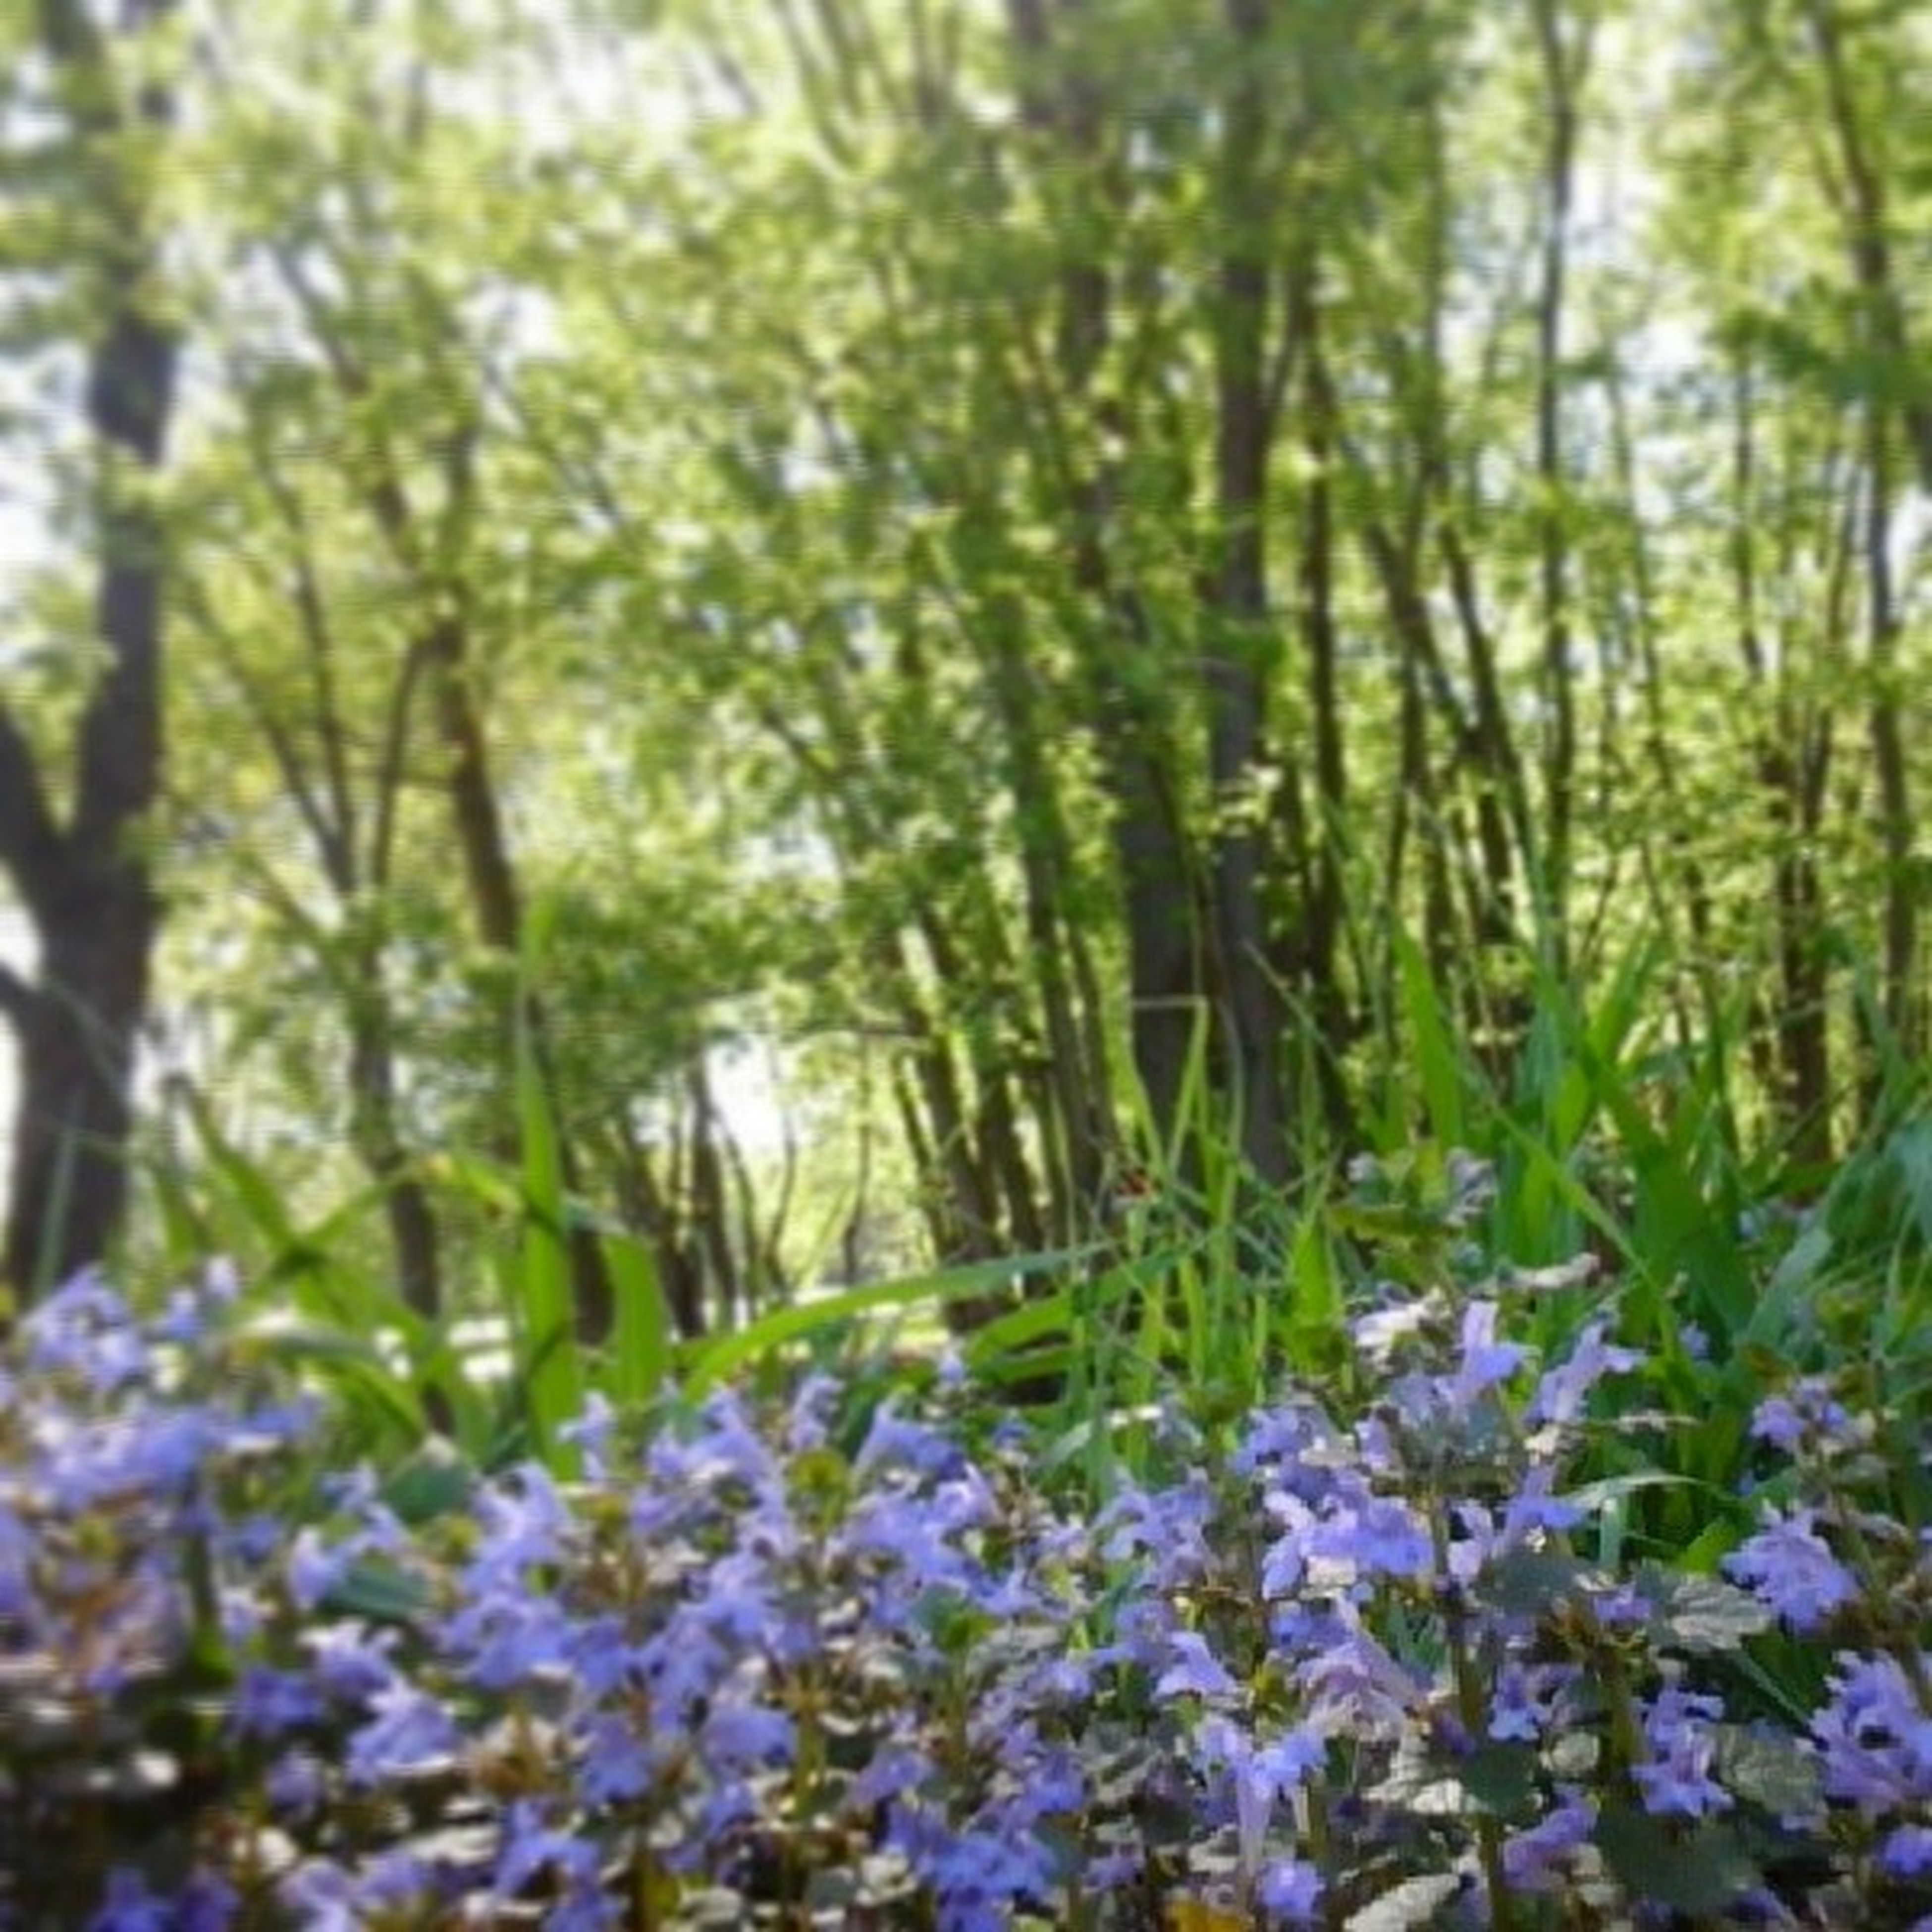 flower, growth, beauty in nature, nature, freshness, plant, tranquility, fragility, tree, field, purple, tranquil scene, blooming, sunlight, scenics, forest, outdoors, day, selective focus, no people